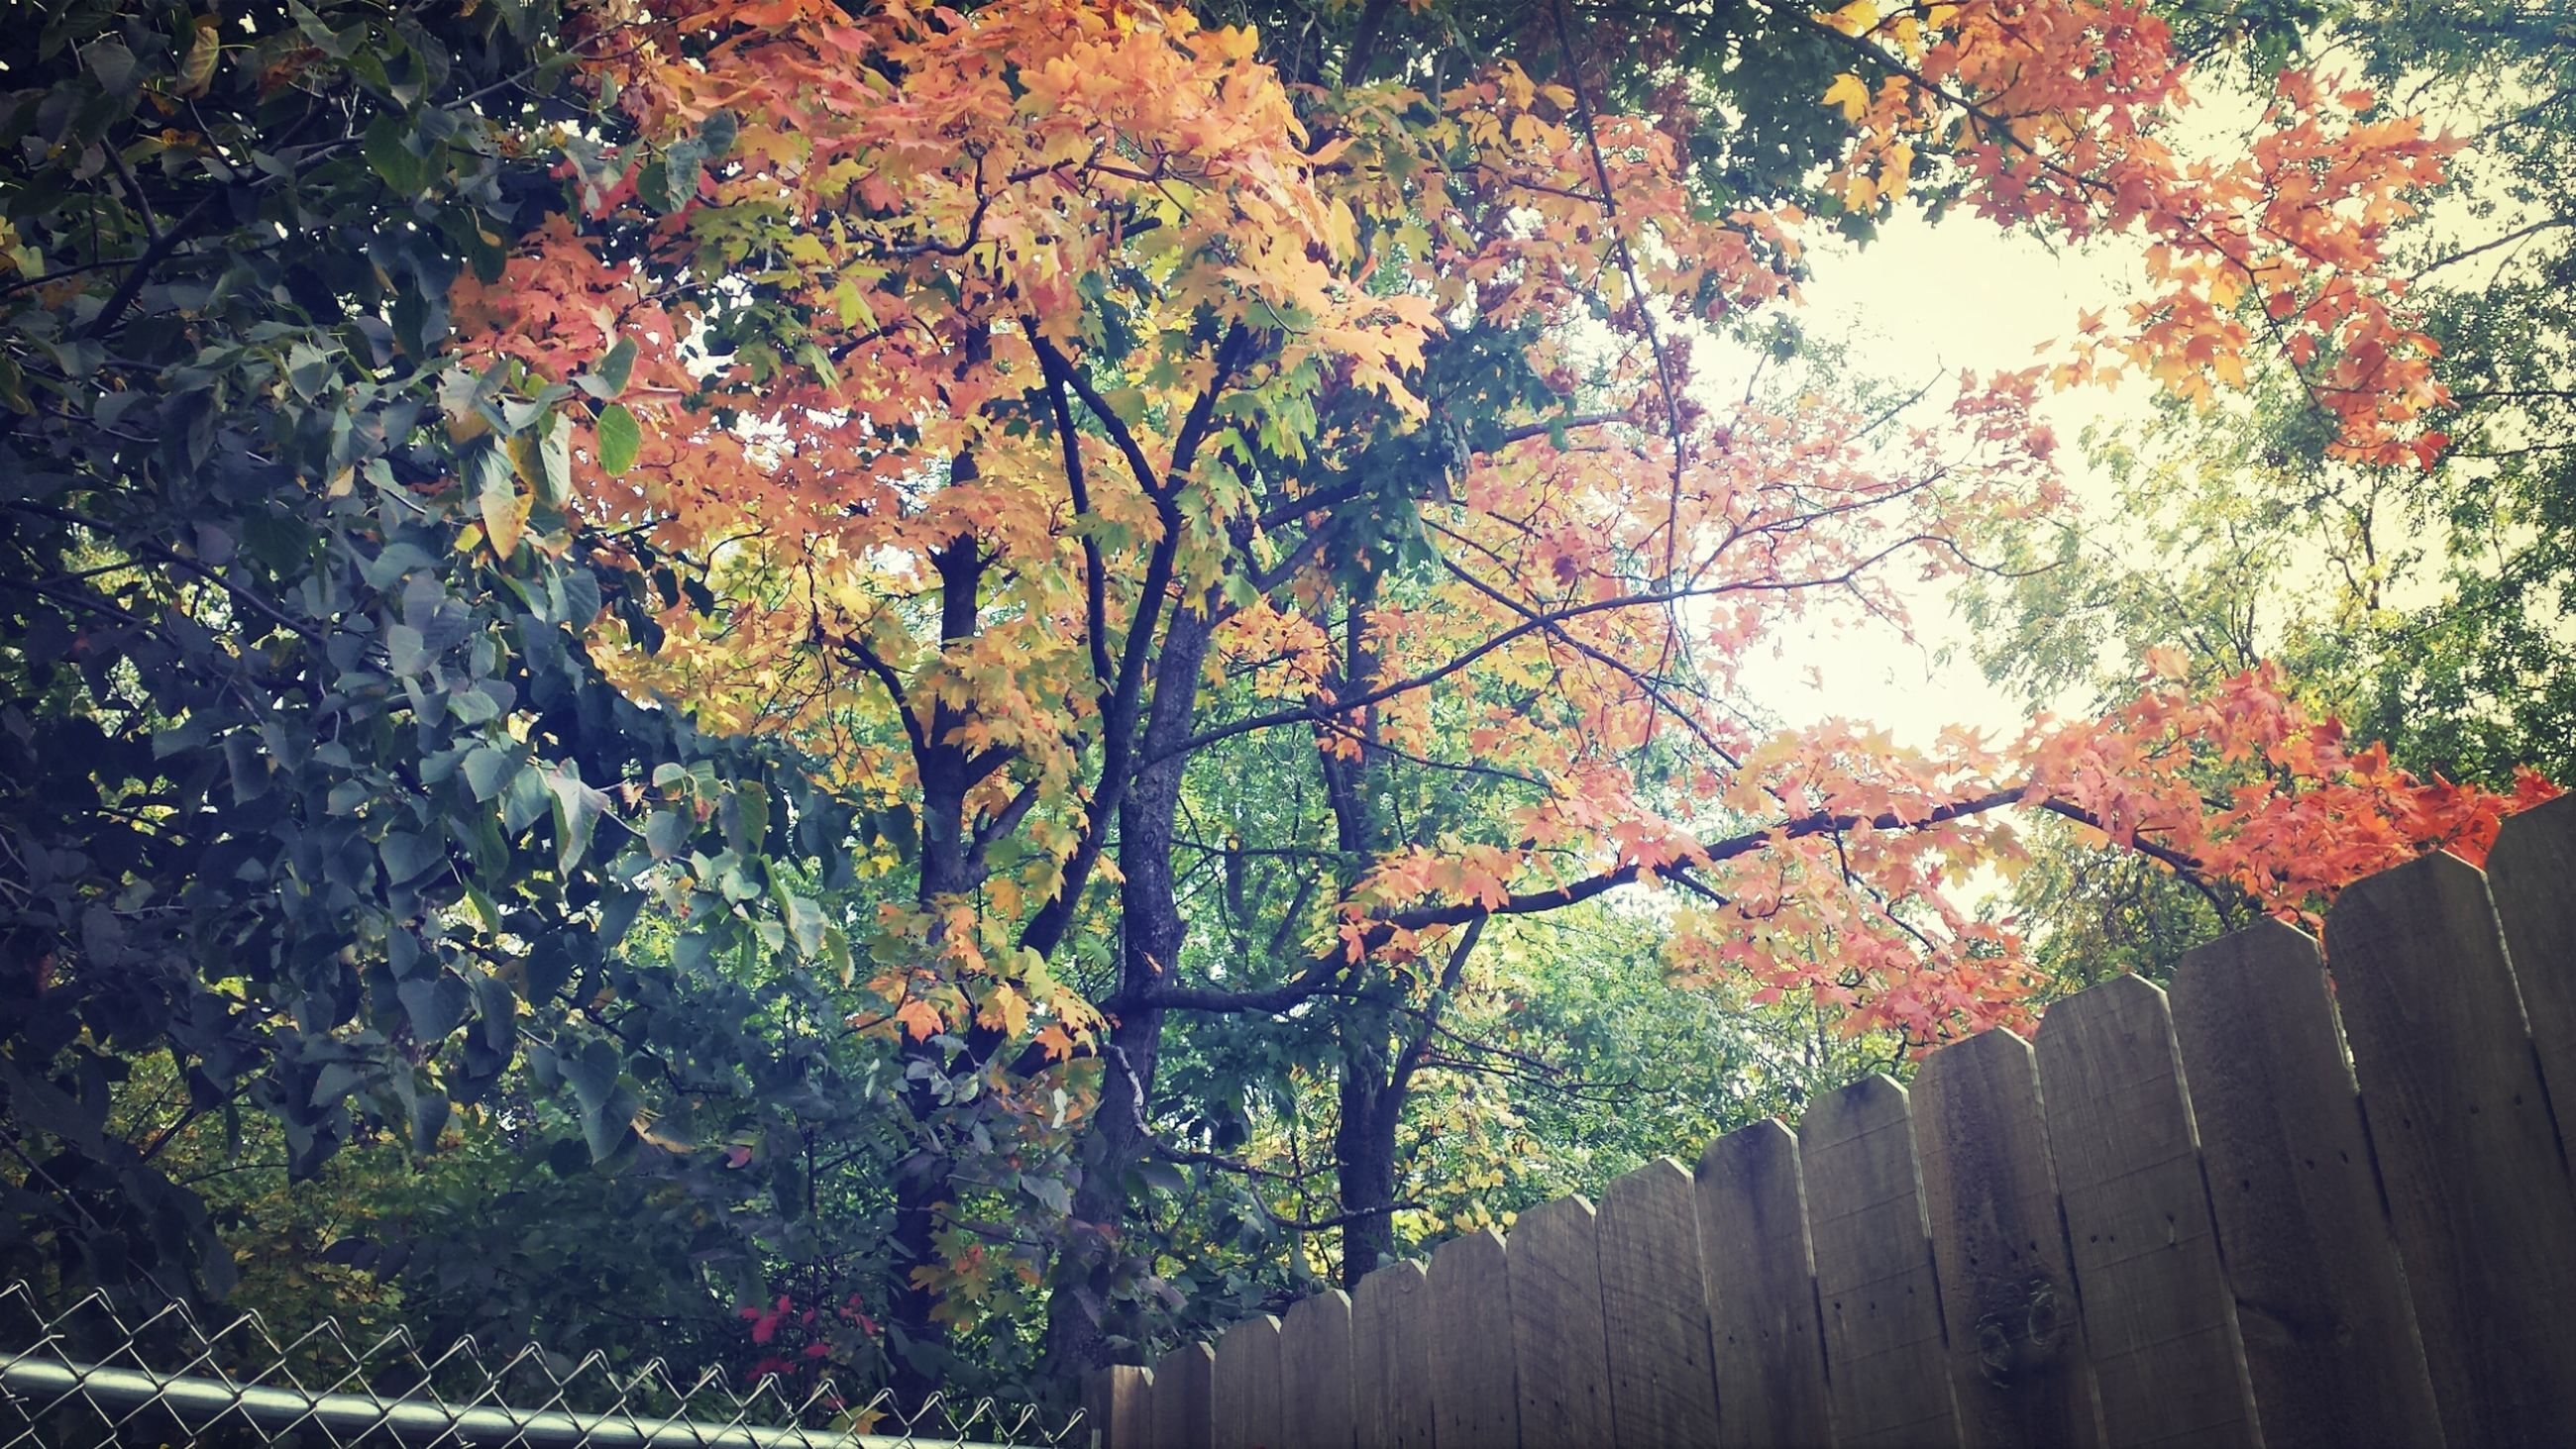 tree, growth, branch, beauty in nature, nature, autumn, flower, change, season, tranquility, leaf, red, day, freshness, plant, outdoors, growing, no people, orange color, tranquil scene